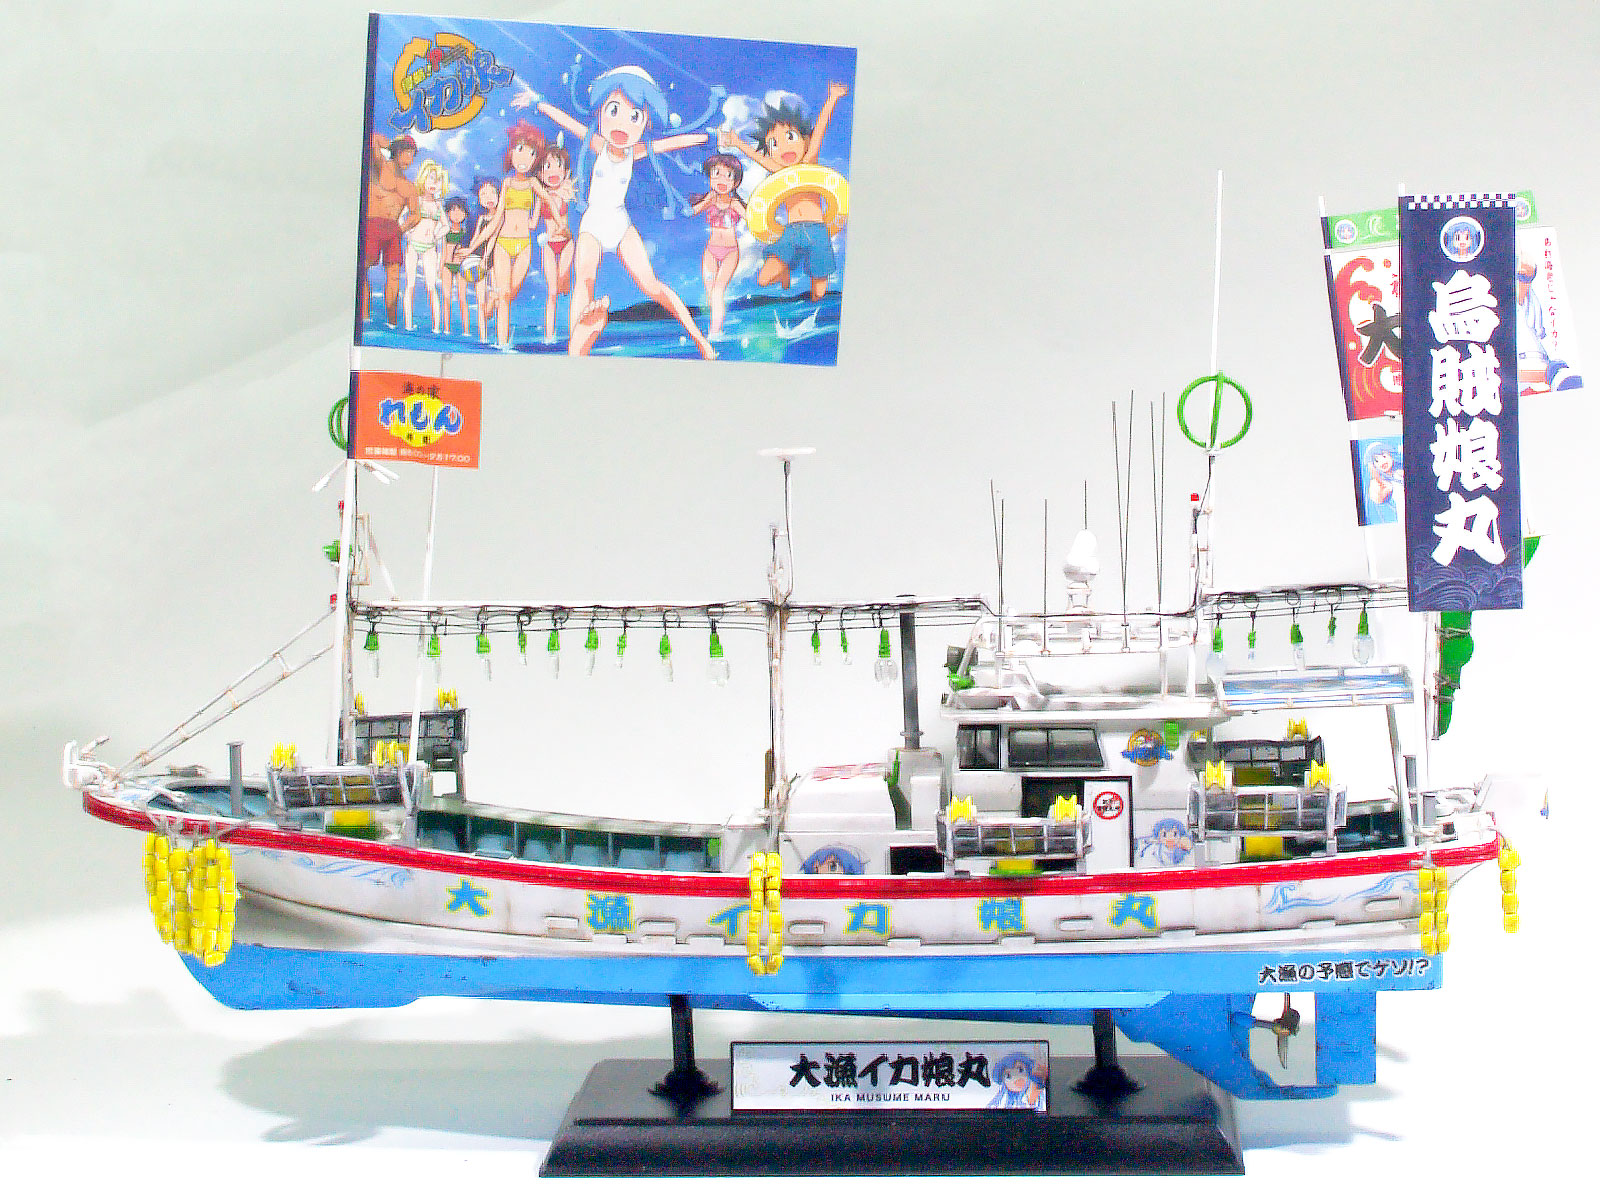 イカ釣り漁船・侵略!?イカ娘Ver. 1/64 アオシマ